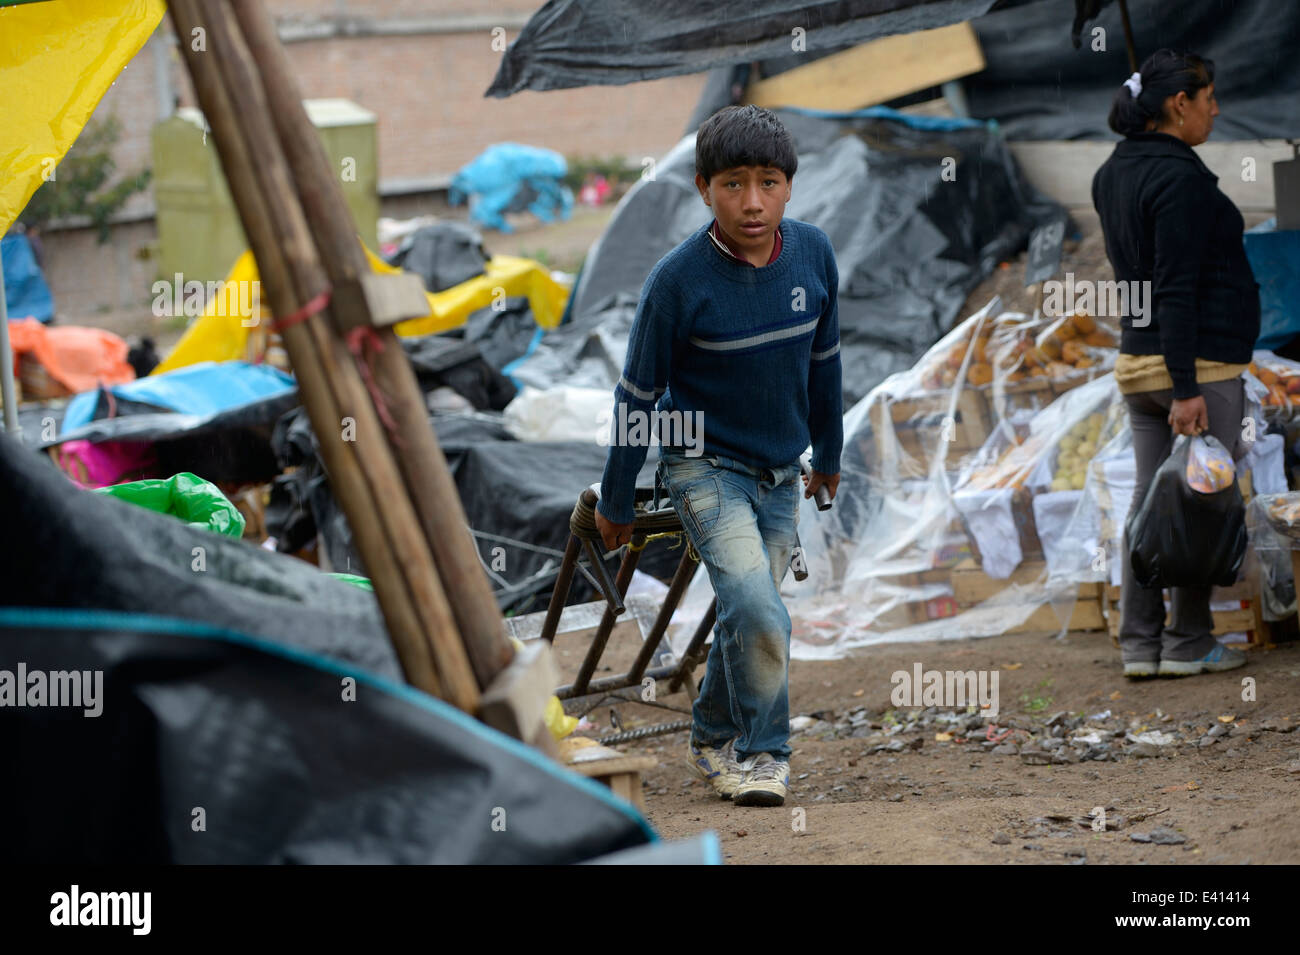 Peru, Ayacucho, Boy working as carrier at market - Stock Image